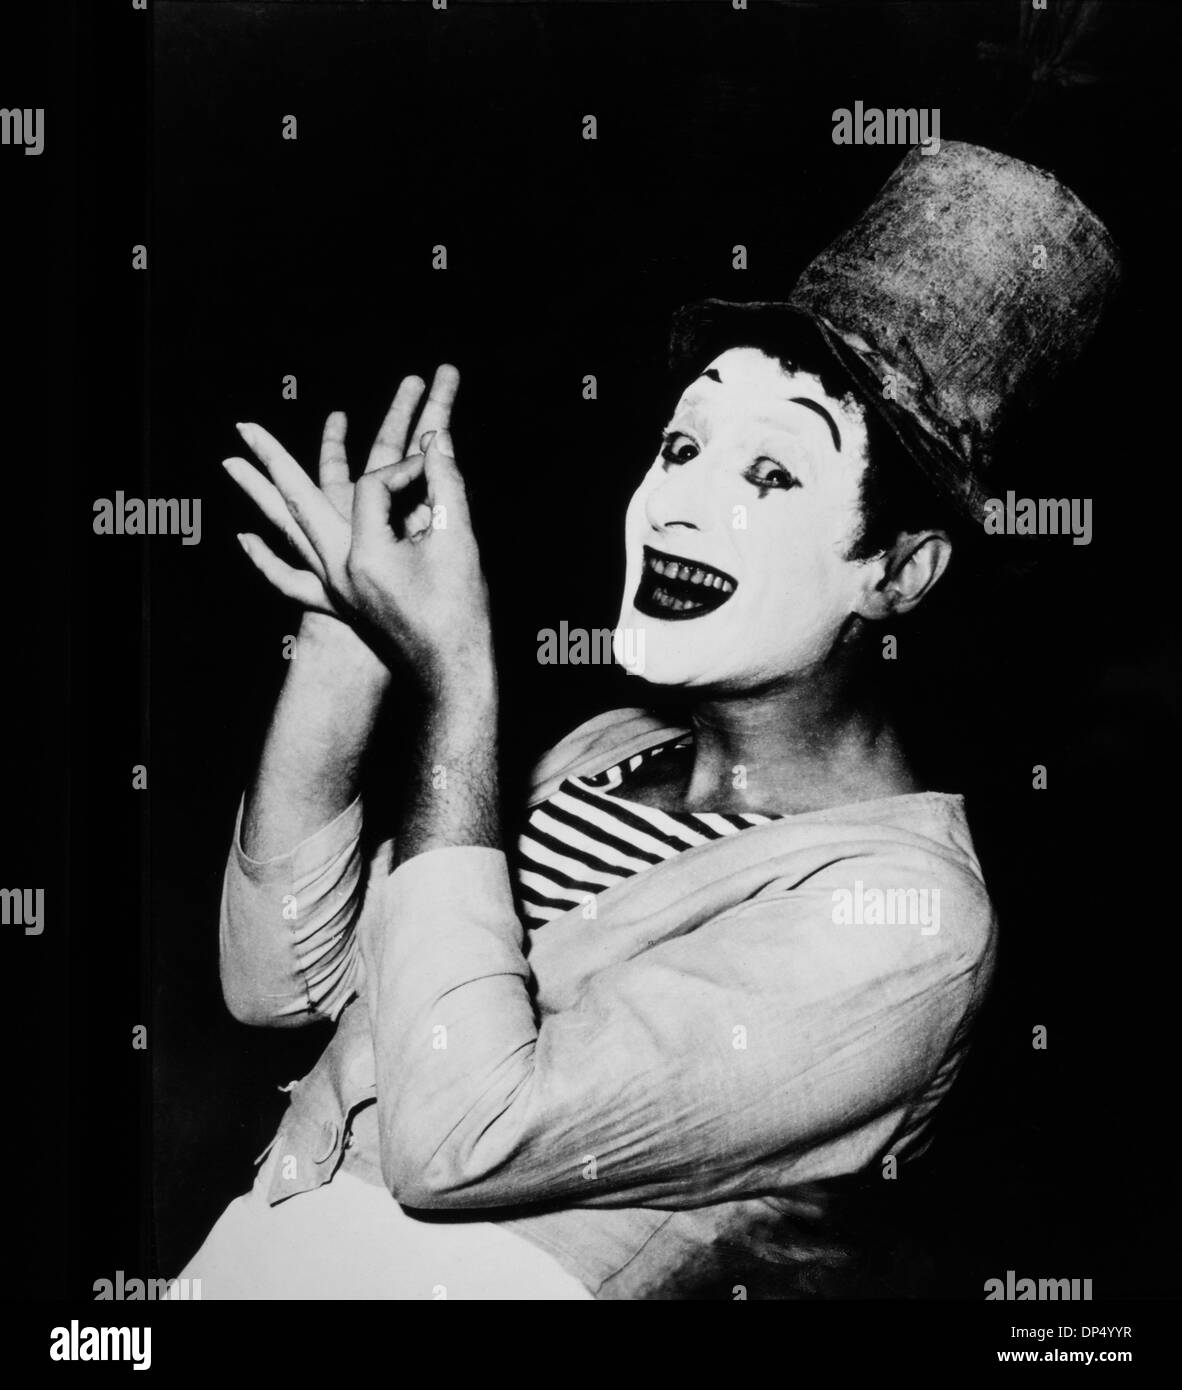 Marcel Marceau (1923-2007), French Actor and Mime, Top Hat and White Makeup, Portrait, circa 1955 - Stock Image